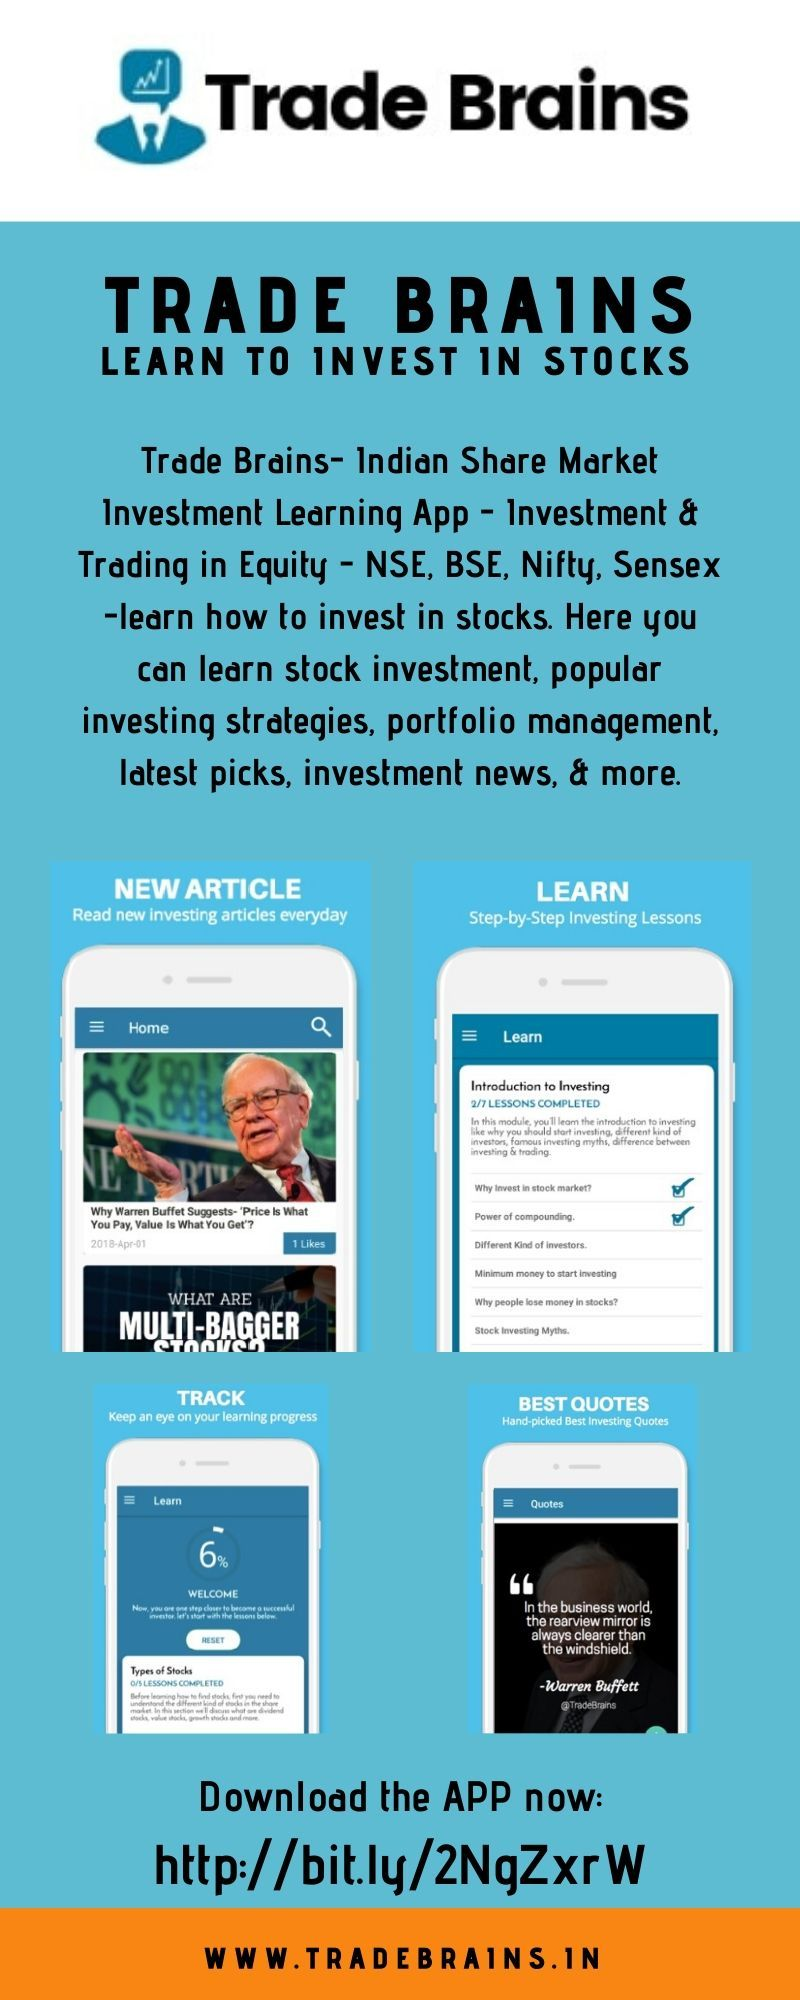 Trade Brains Indian Share Market Investment Learning App